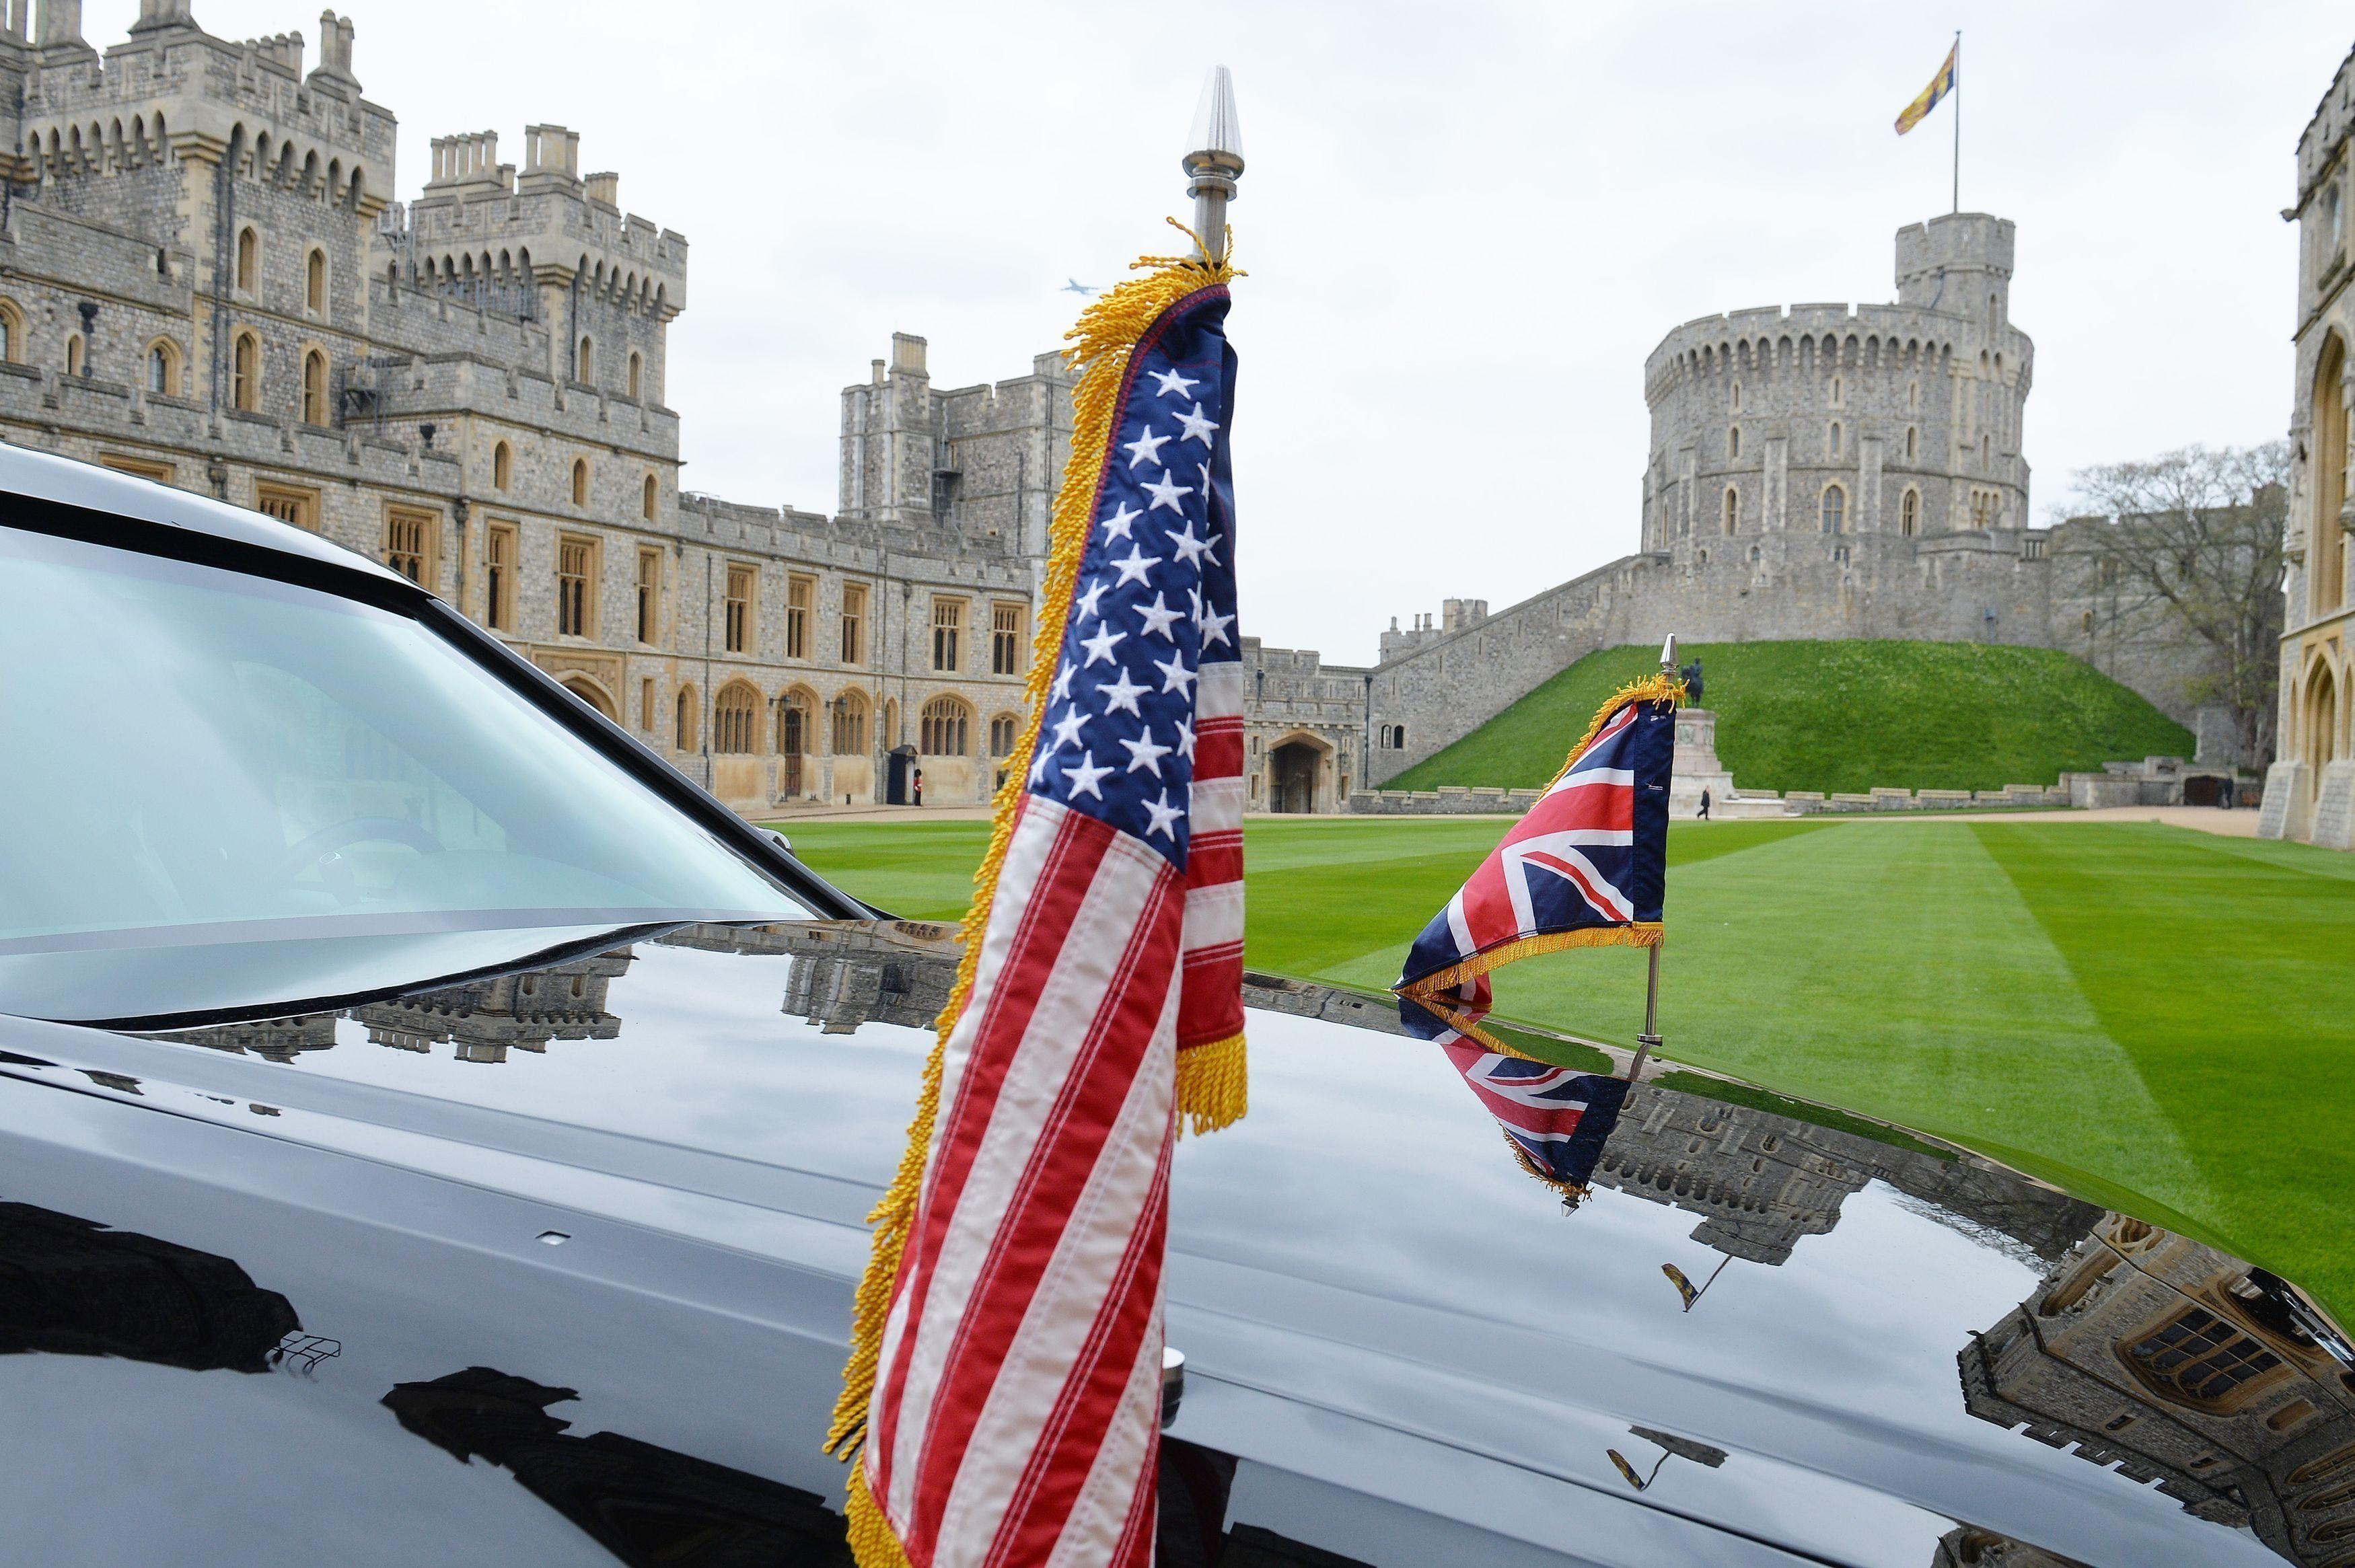 Donald and Melania trump met with Queen Elizabeth II at Windsor castle